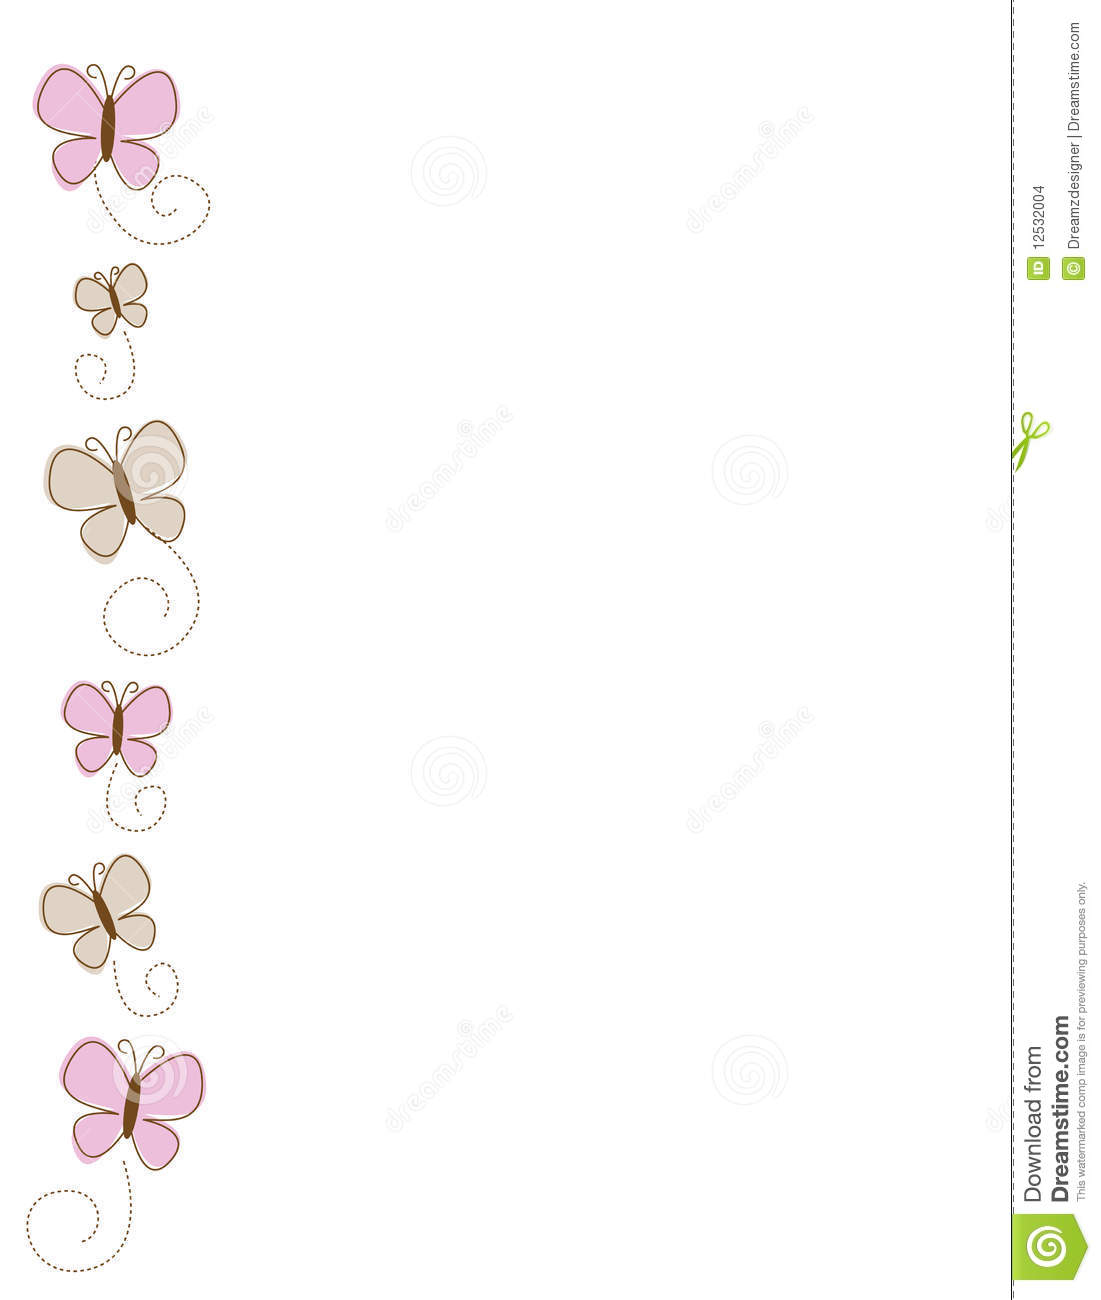 Cute Bordered Pastel Flower Wallpaper Butterfly Butterflies Side Border Stock Images Image